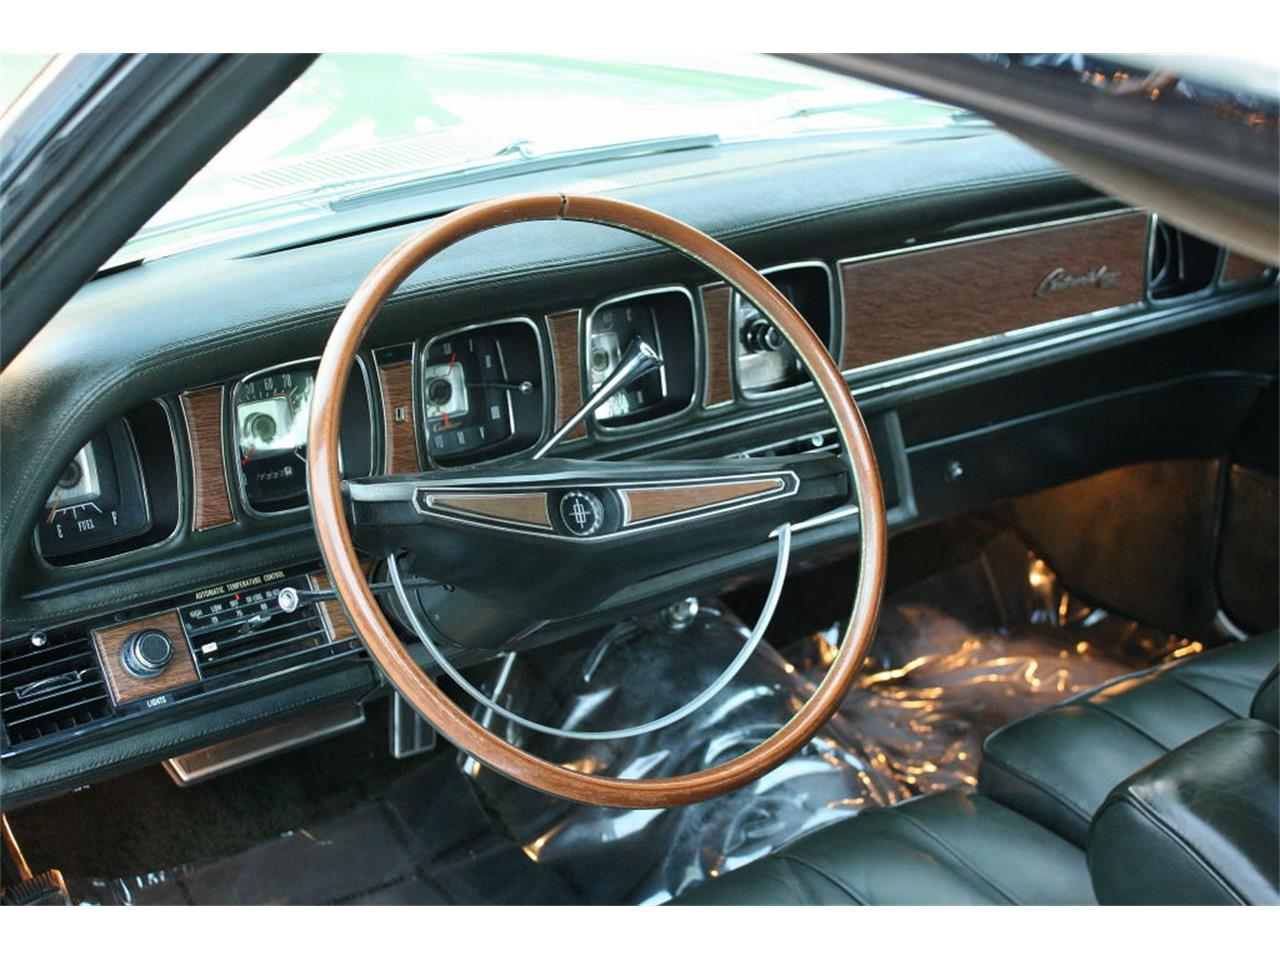 Large Picture of '69 Continental Mark III located in Lakeland Florida - $24,500.00 Offered by MJC Classic Cars - OPDW